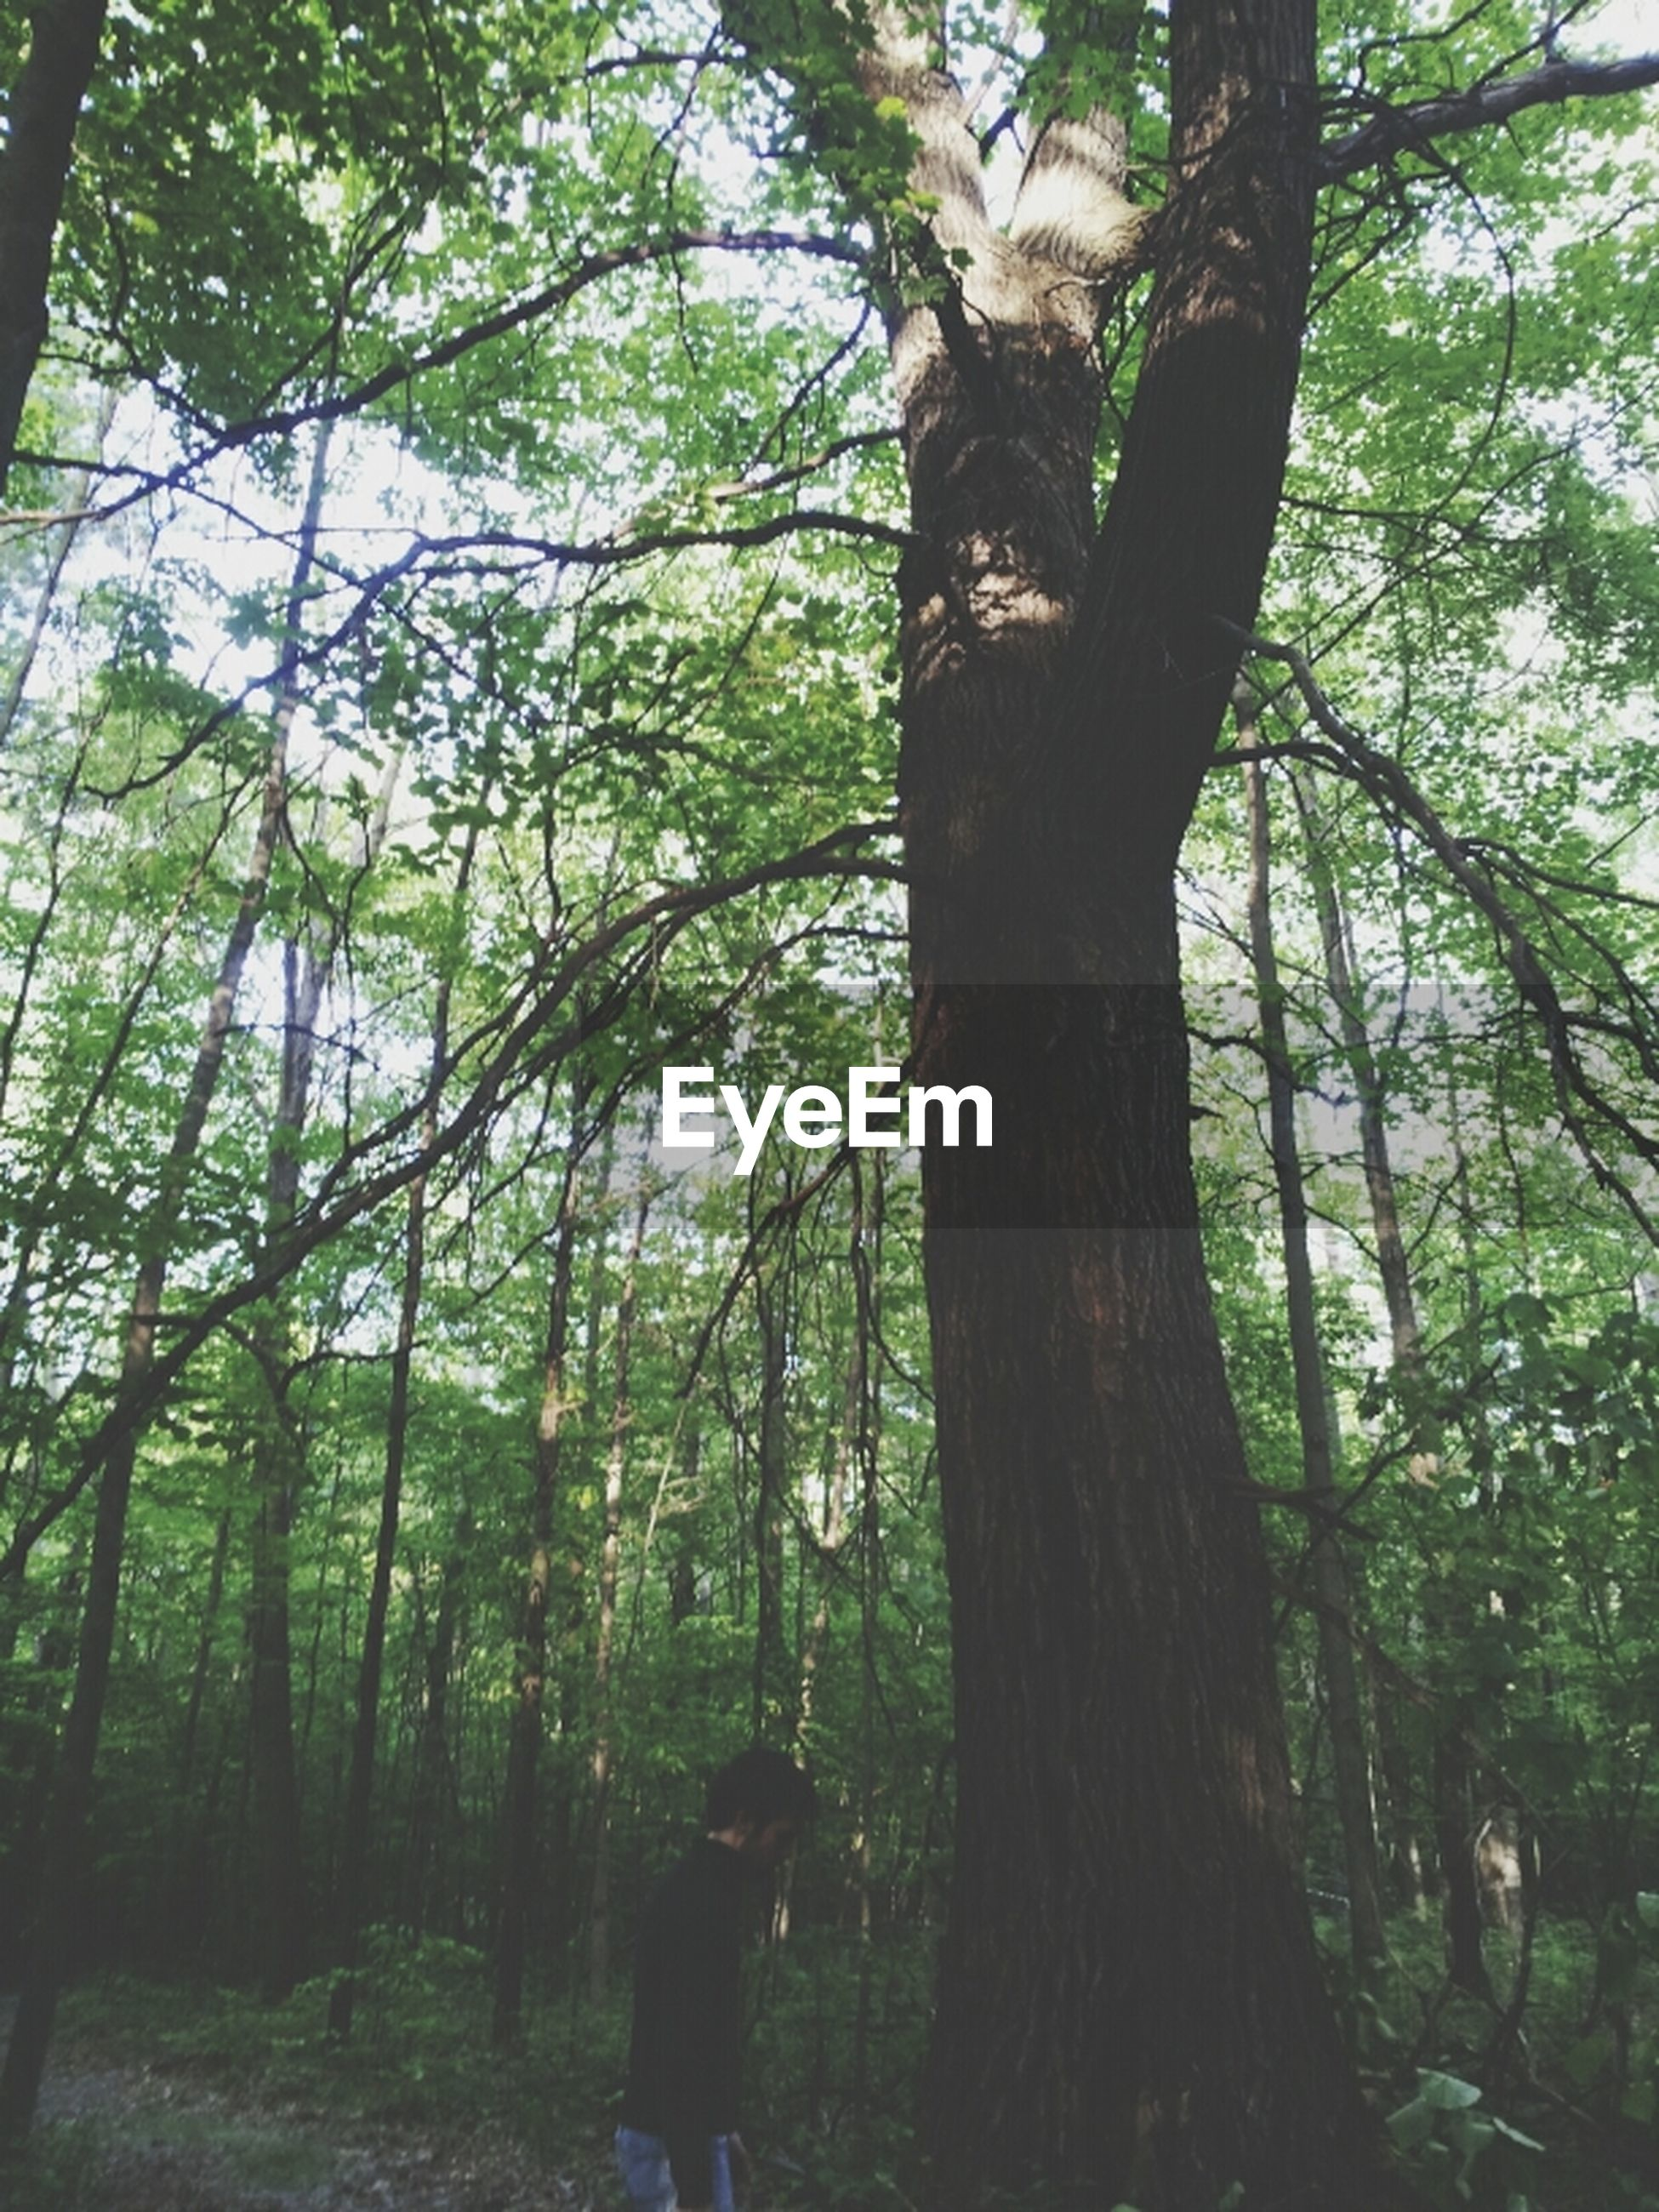 tree, tree trunk, forest, growth, branch, tranquility, woodland, nature, green color, tranquil scene, beauty in nature, day, outdoors, leisure activity, lifestyles, non-urban scene, scenics, sunlight